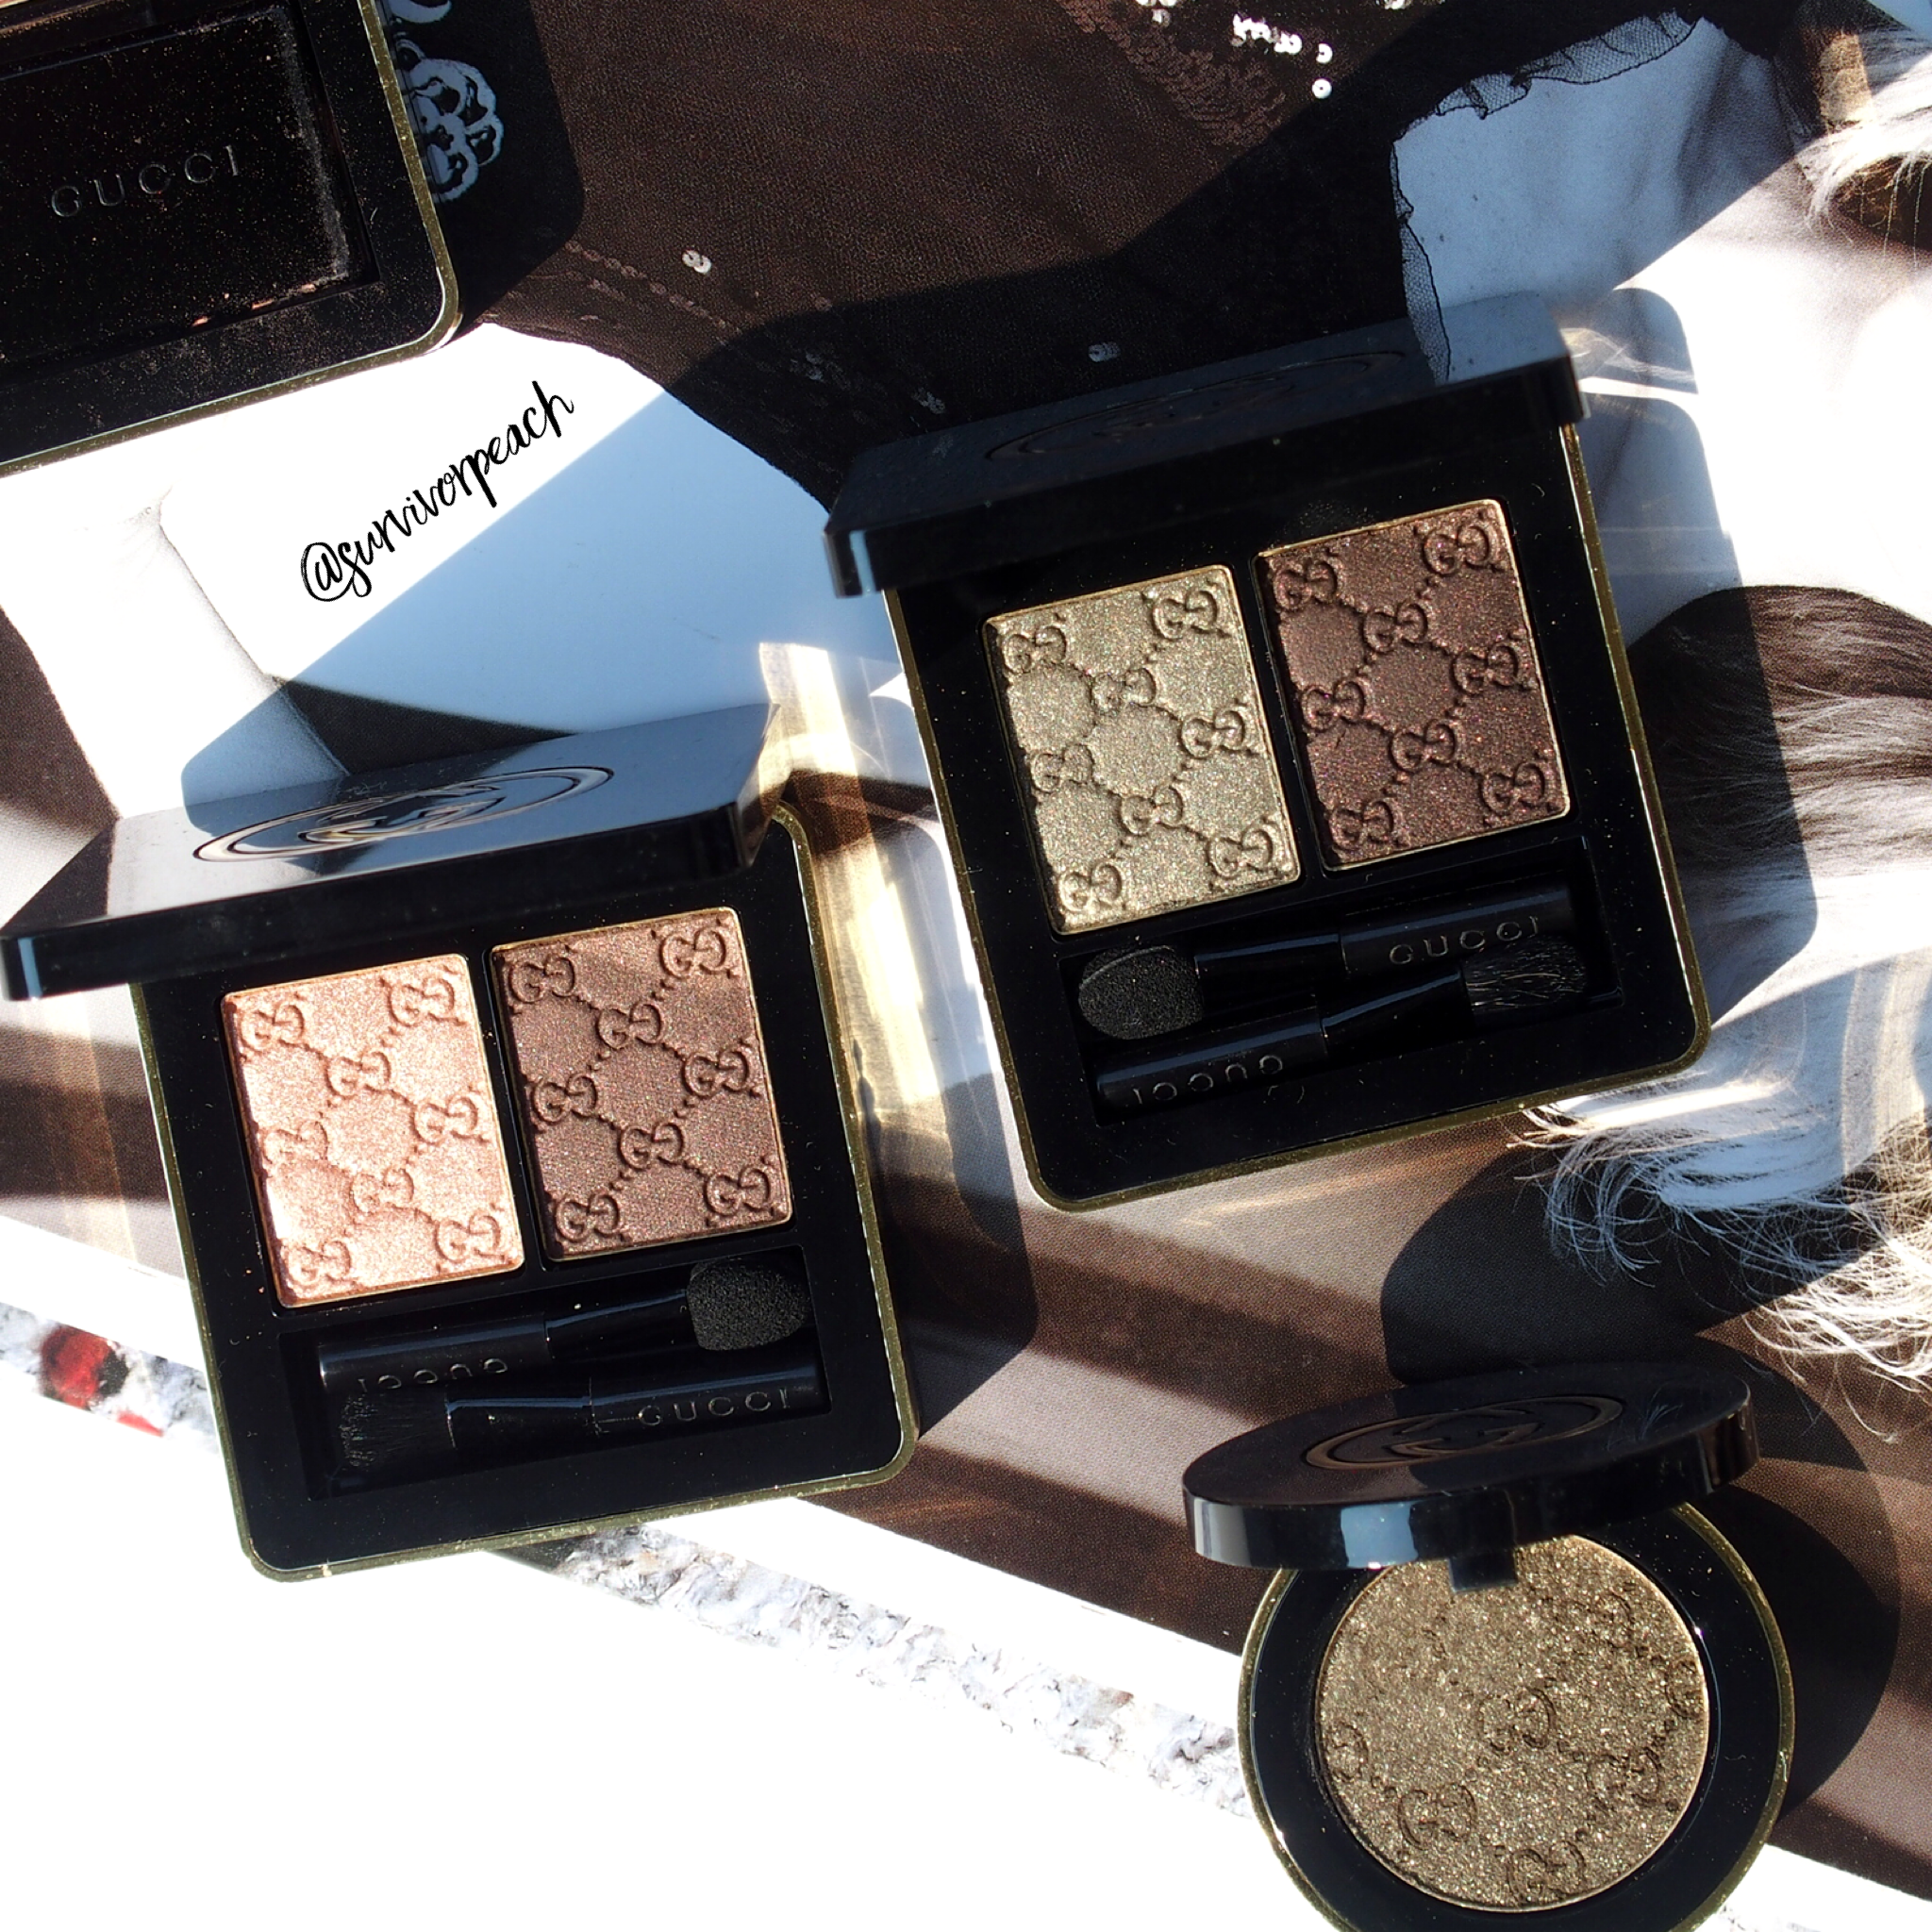 Gucci Beauty Magnetic Color Shadow Duo in Amaretto and Fume, Magnetic Color Shadow Mono eyeshadow in Iconic Gold.